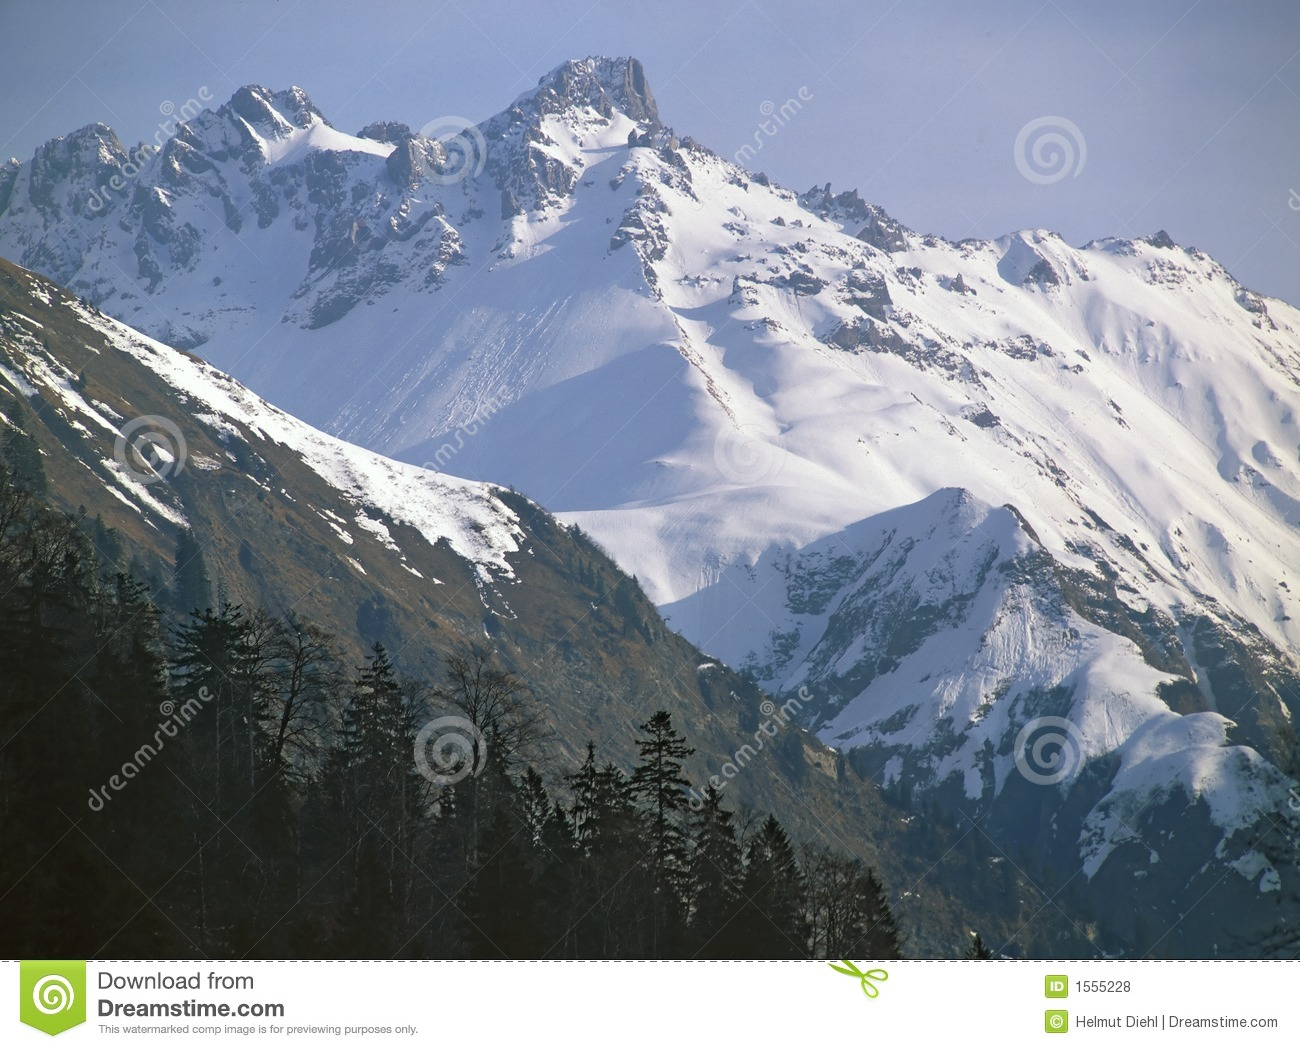 SNOW_IN_THE_MOUNTAIN